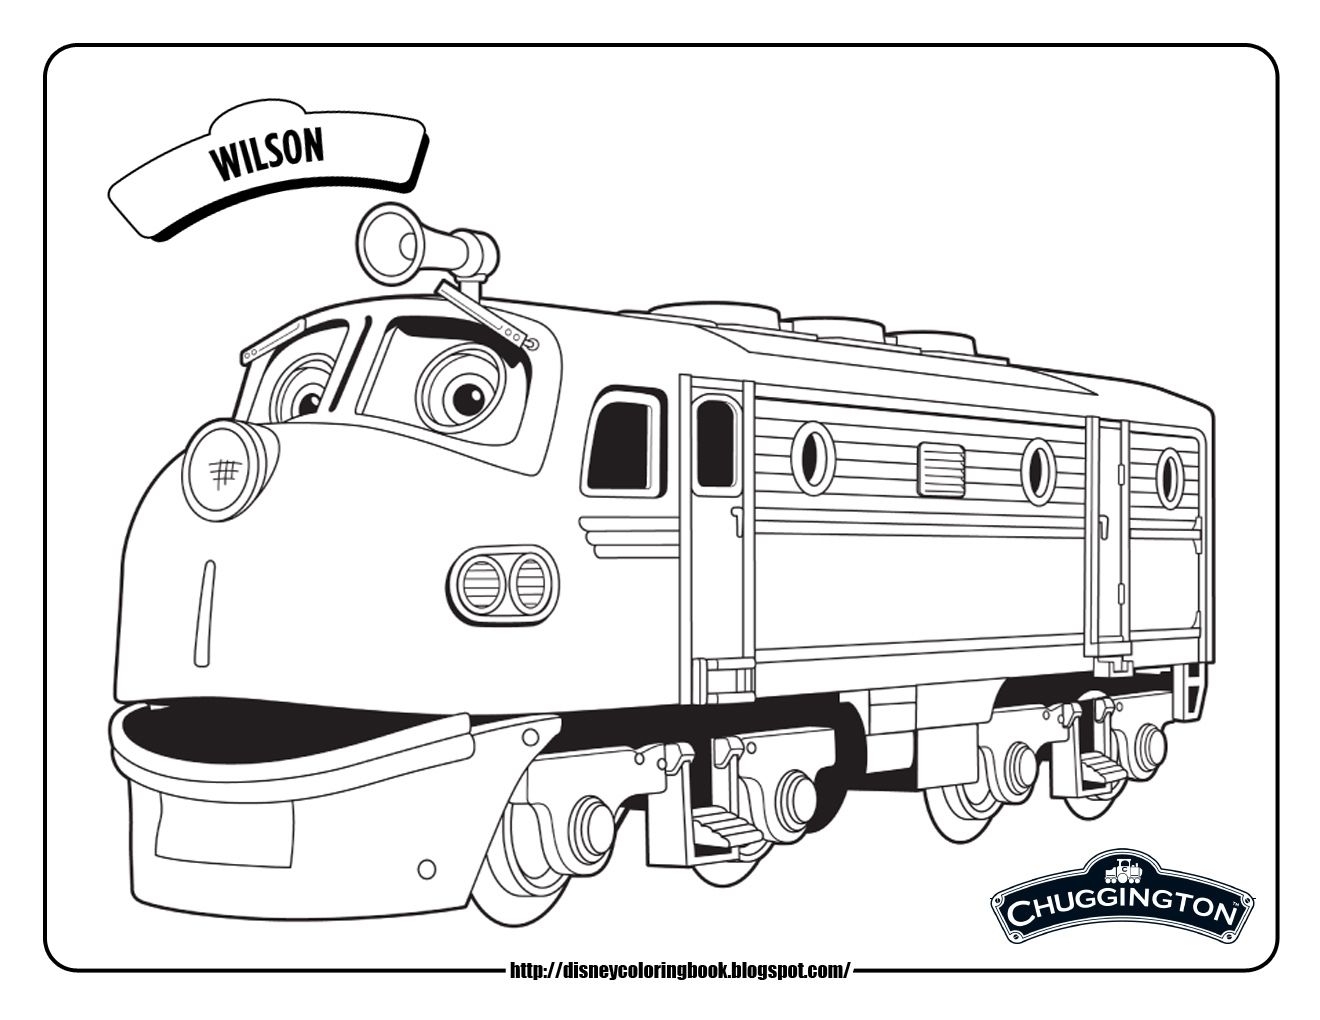 chuggington coloring pages | chuggington wilson train coloring ... - Disney Jr Coloring Pages Print